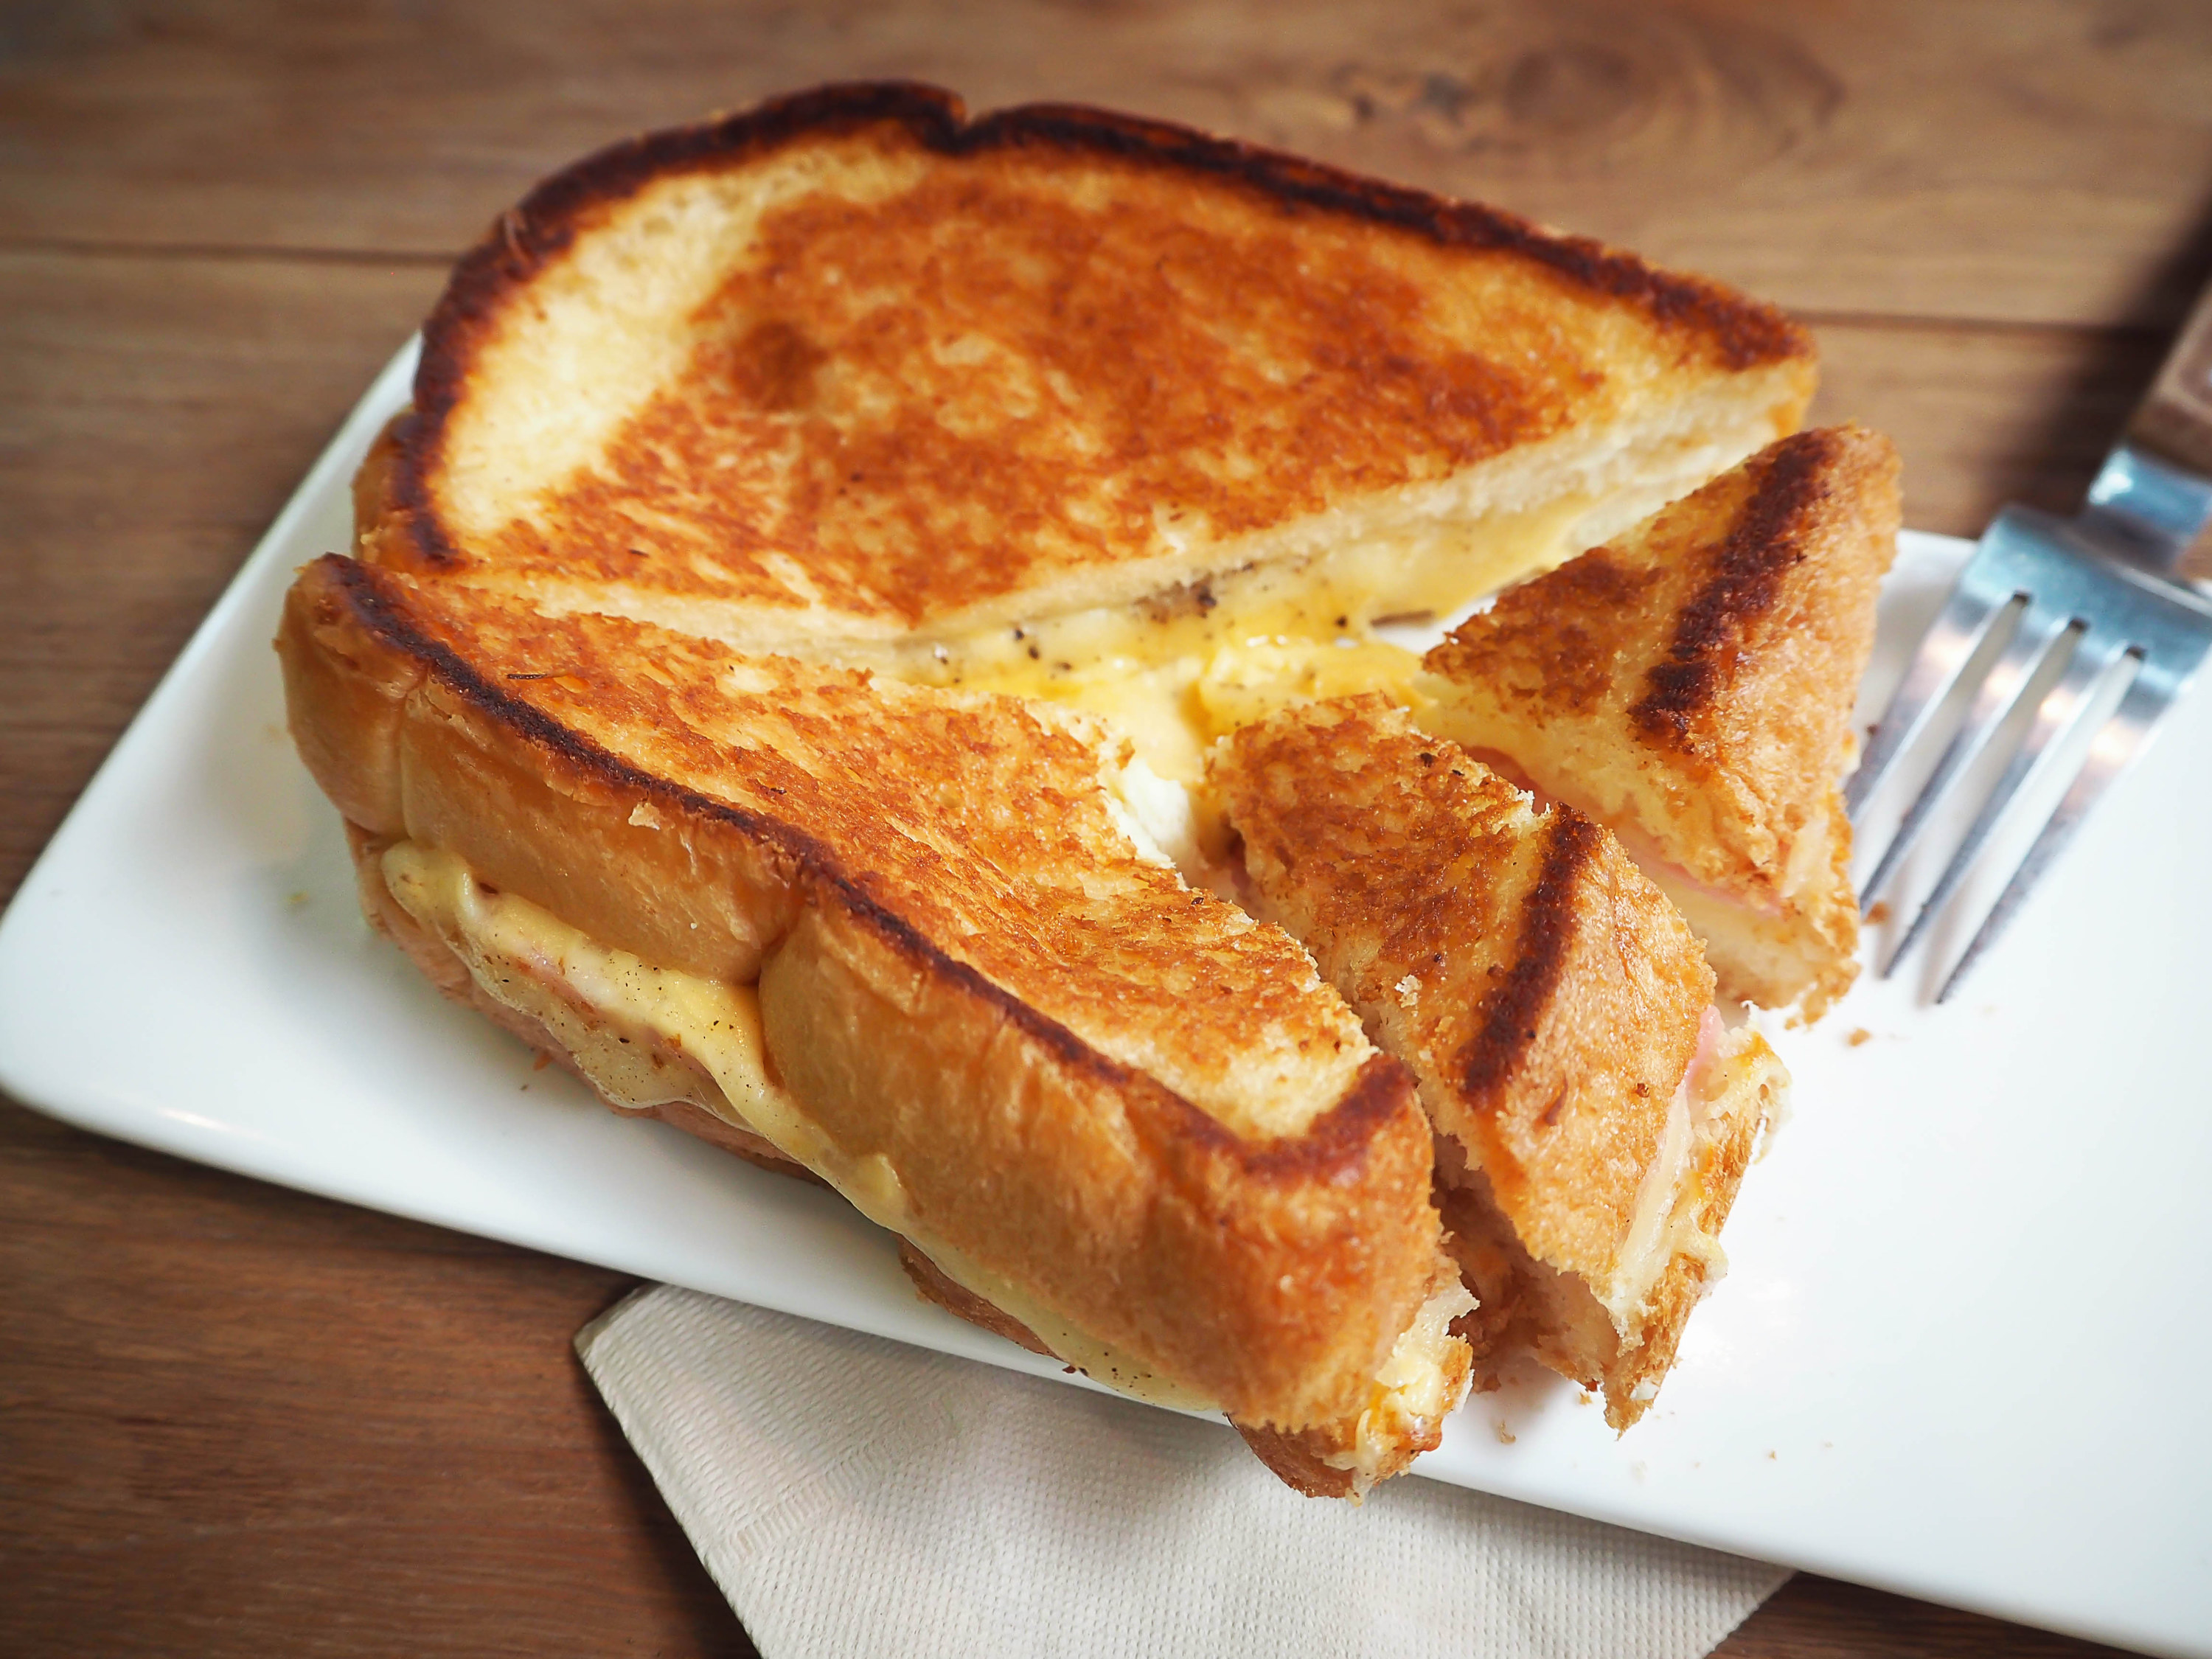 An image of grilled cheese